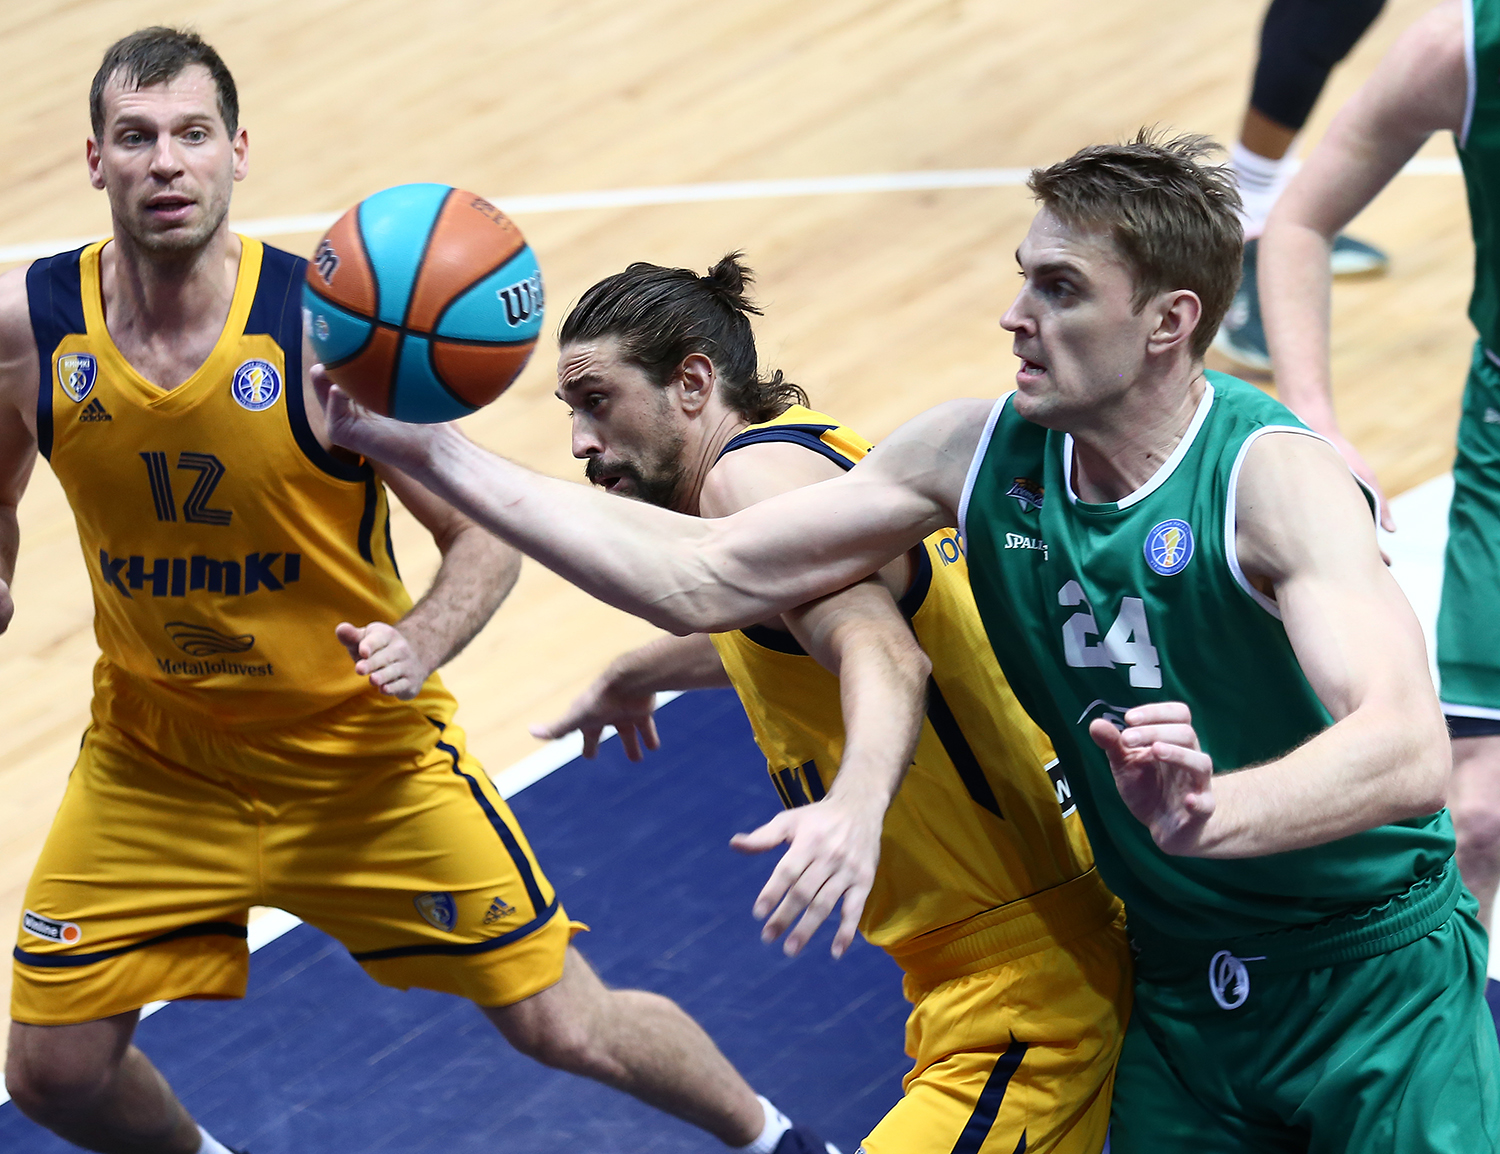 Zielona Gora outclass Khimki and catch Loko and CSKA in wins number